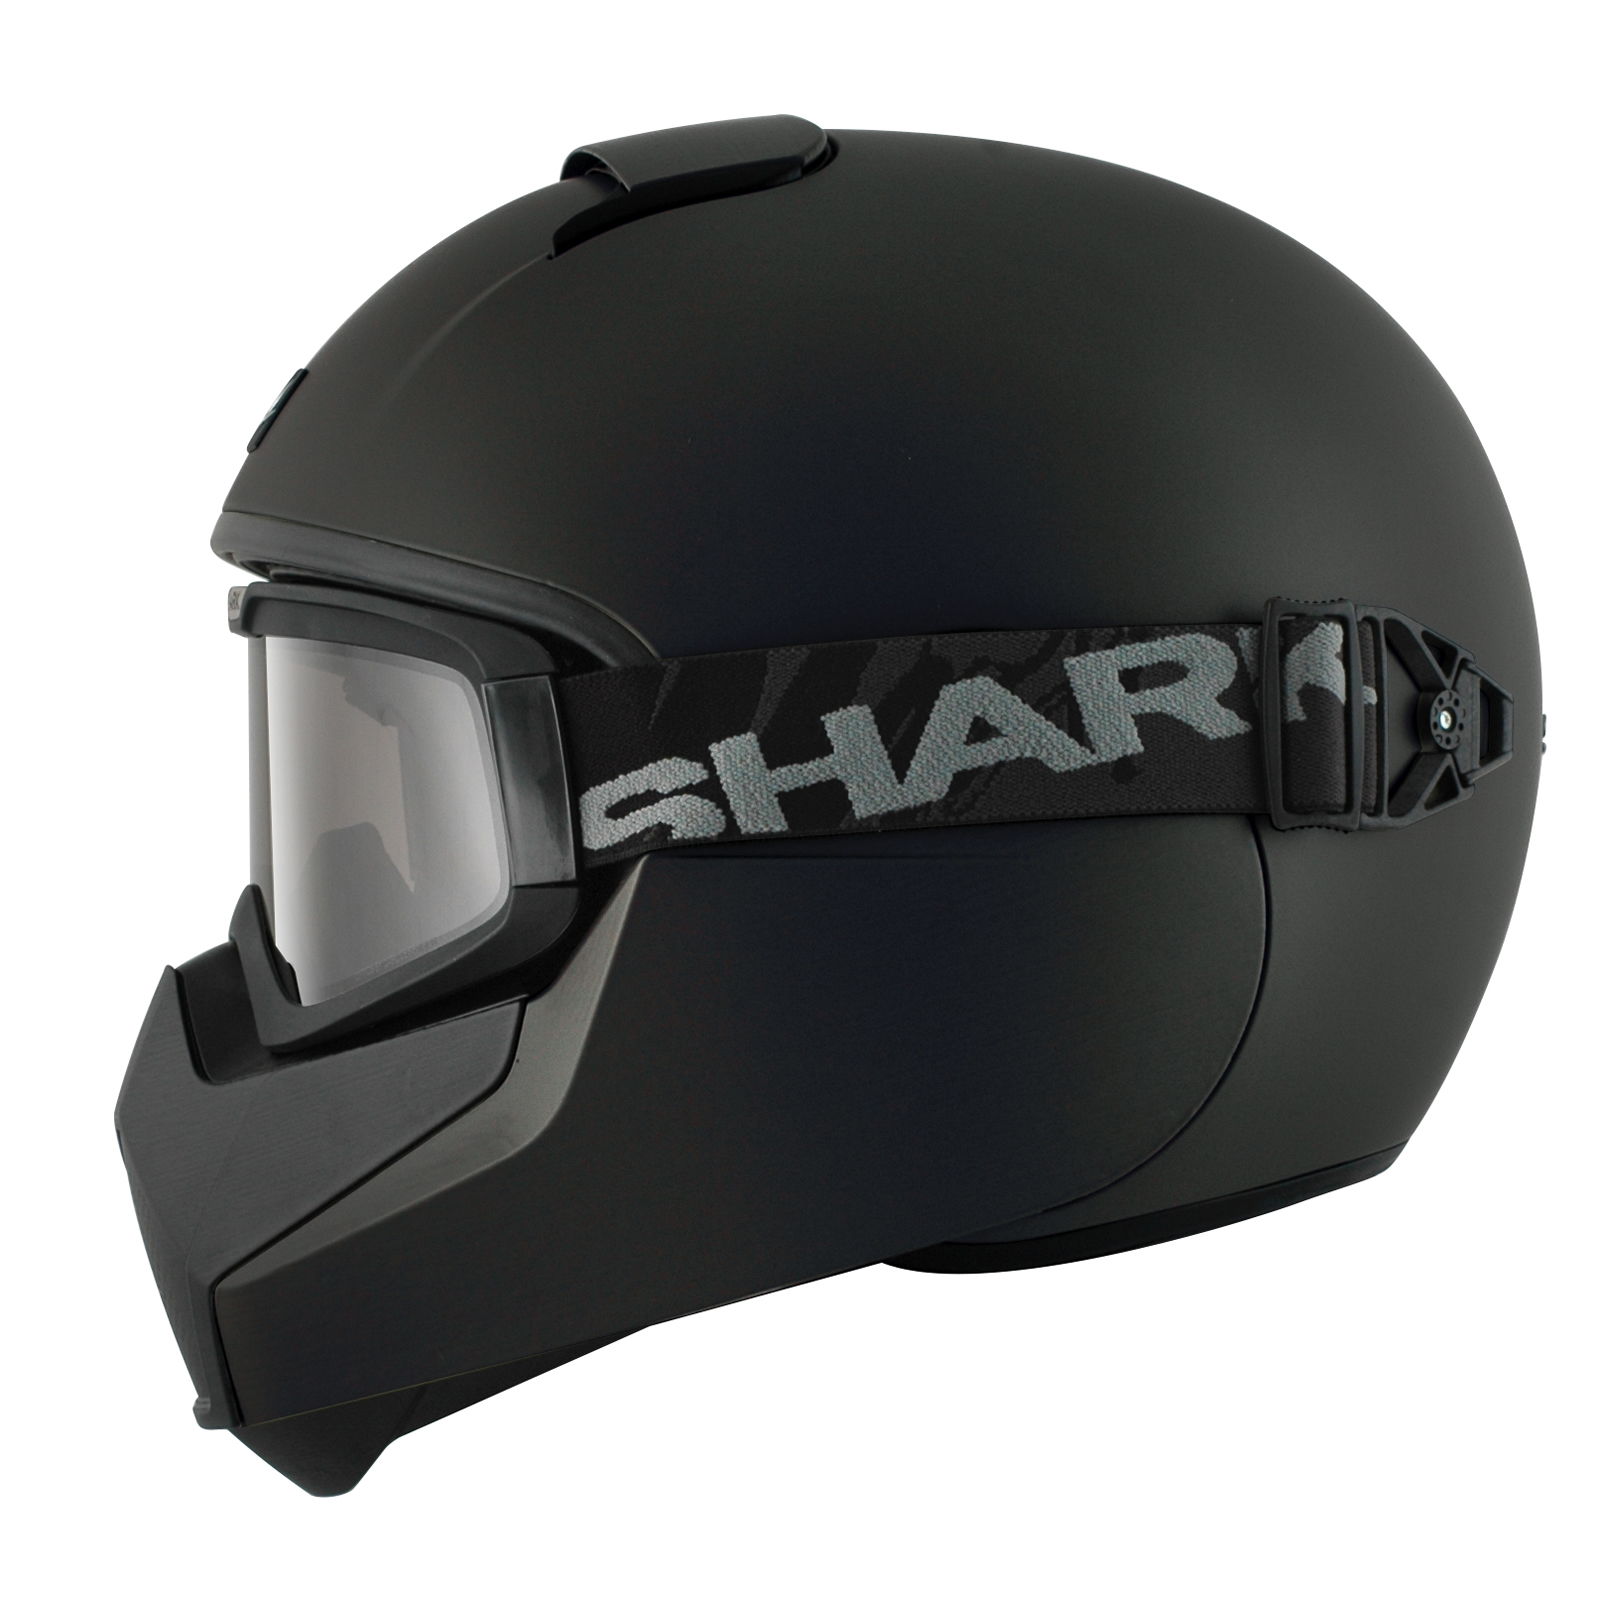 Shark Vancore Plain Matt Black Motorcycle Helmet ...